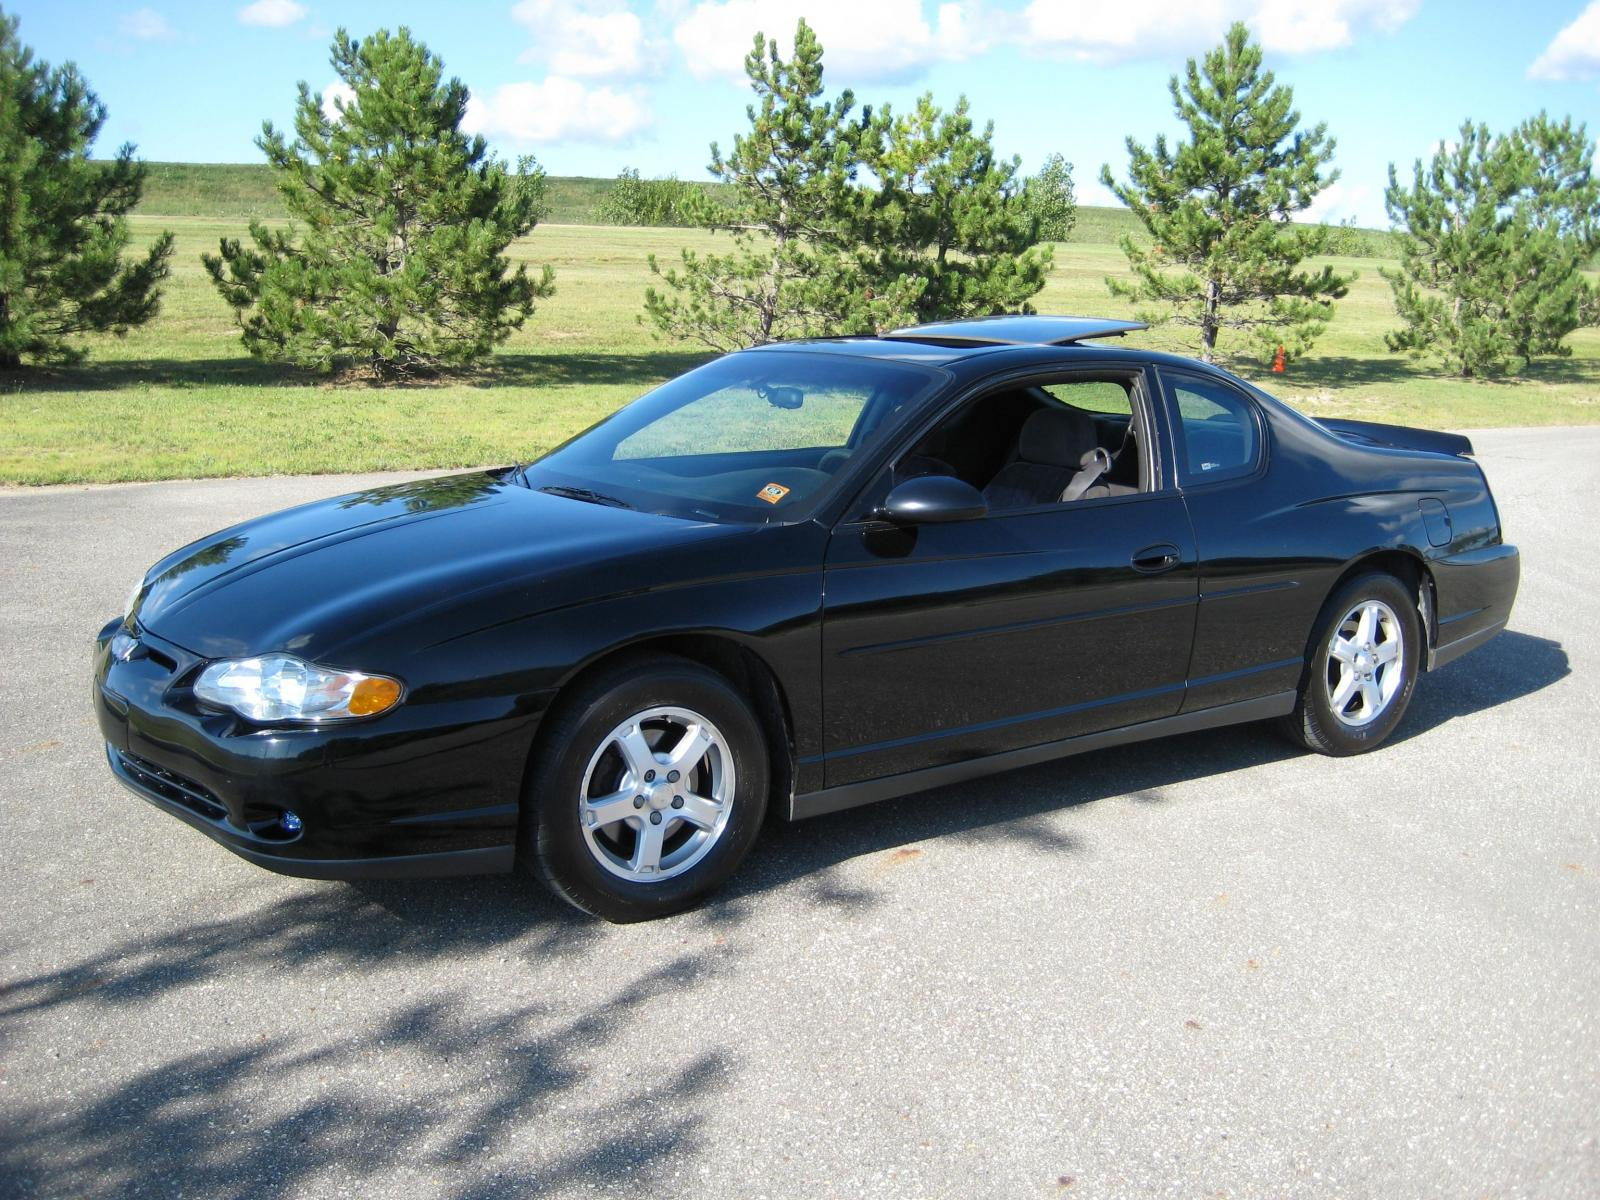 2003 Chevrolet Monte Carlo Information and photos ZombieDrive